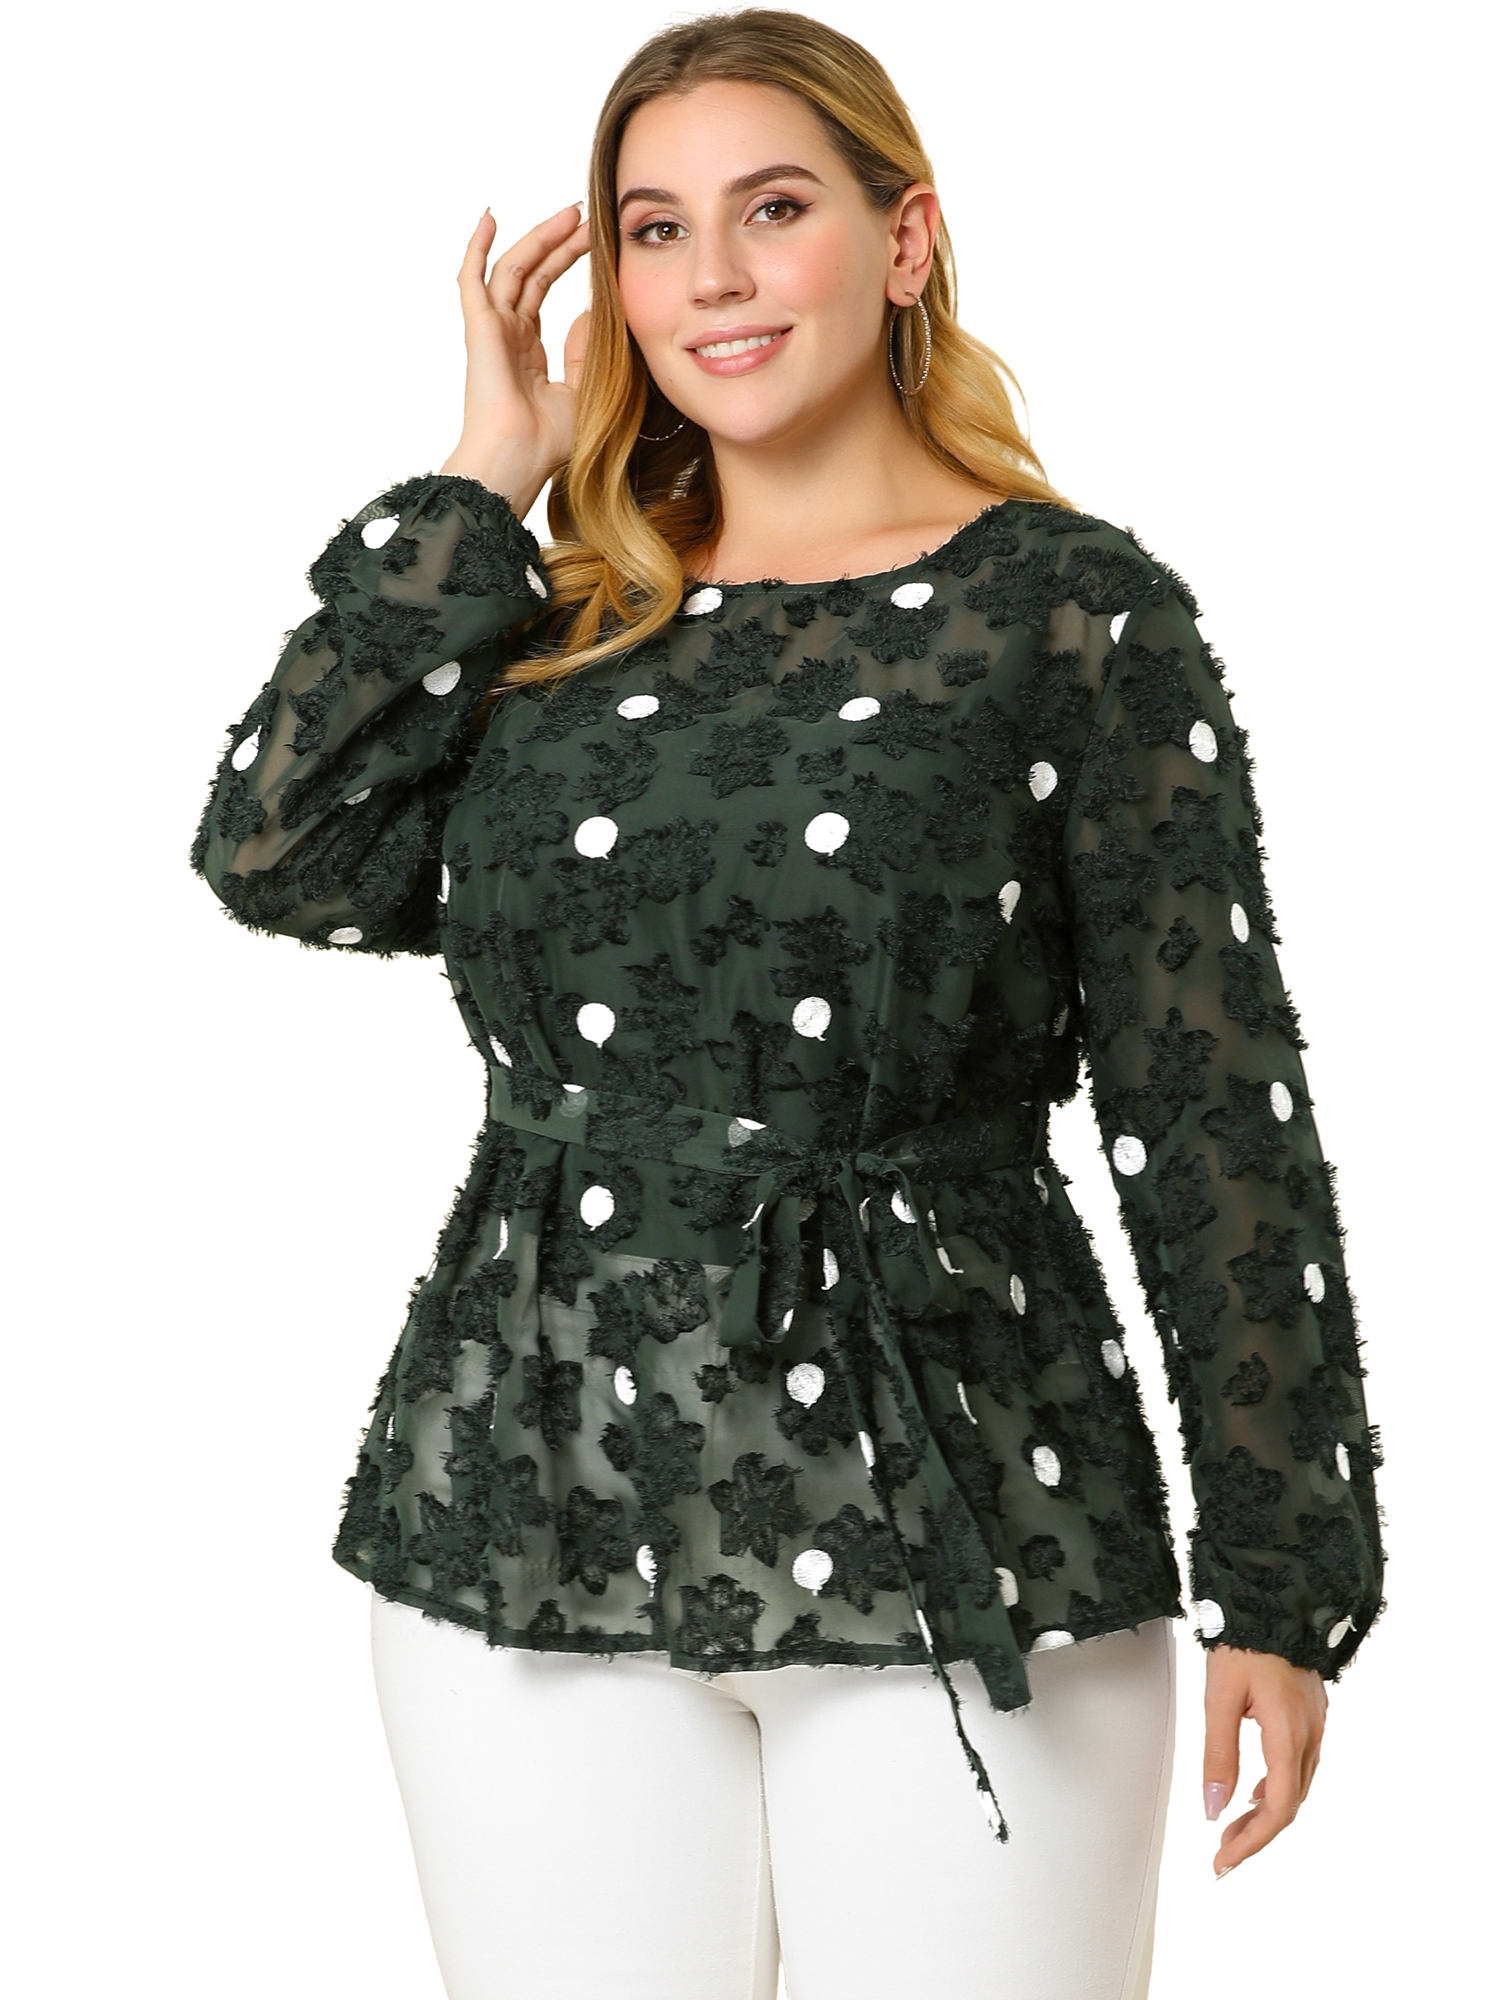 Women's Plus Size Belted High Waisted Polka Dots Peplum Mesh Lace Top Green 4X